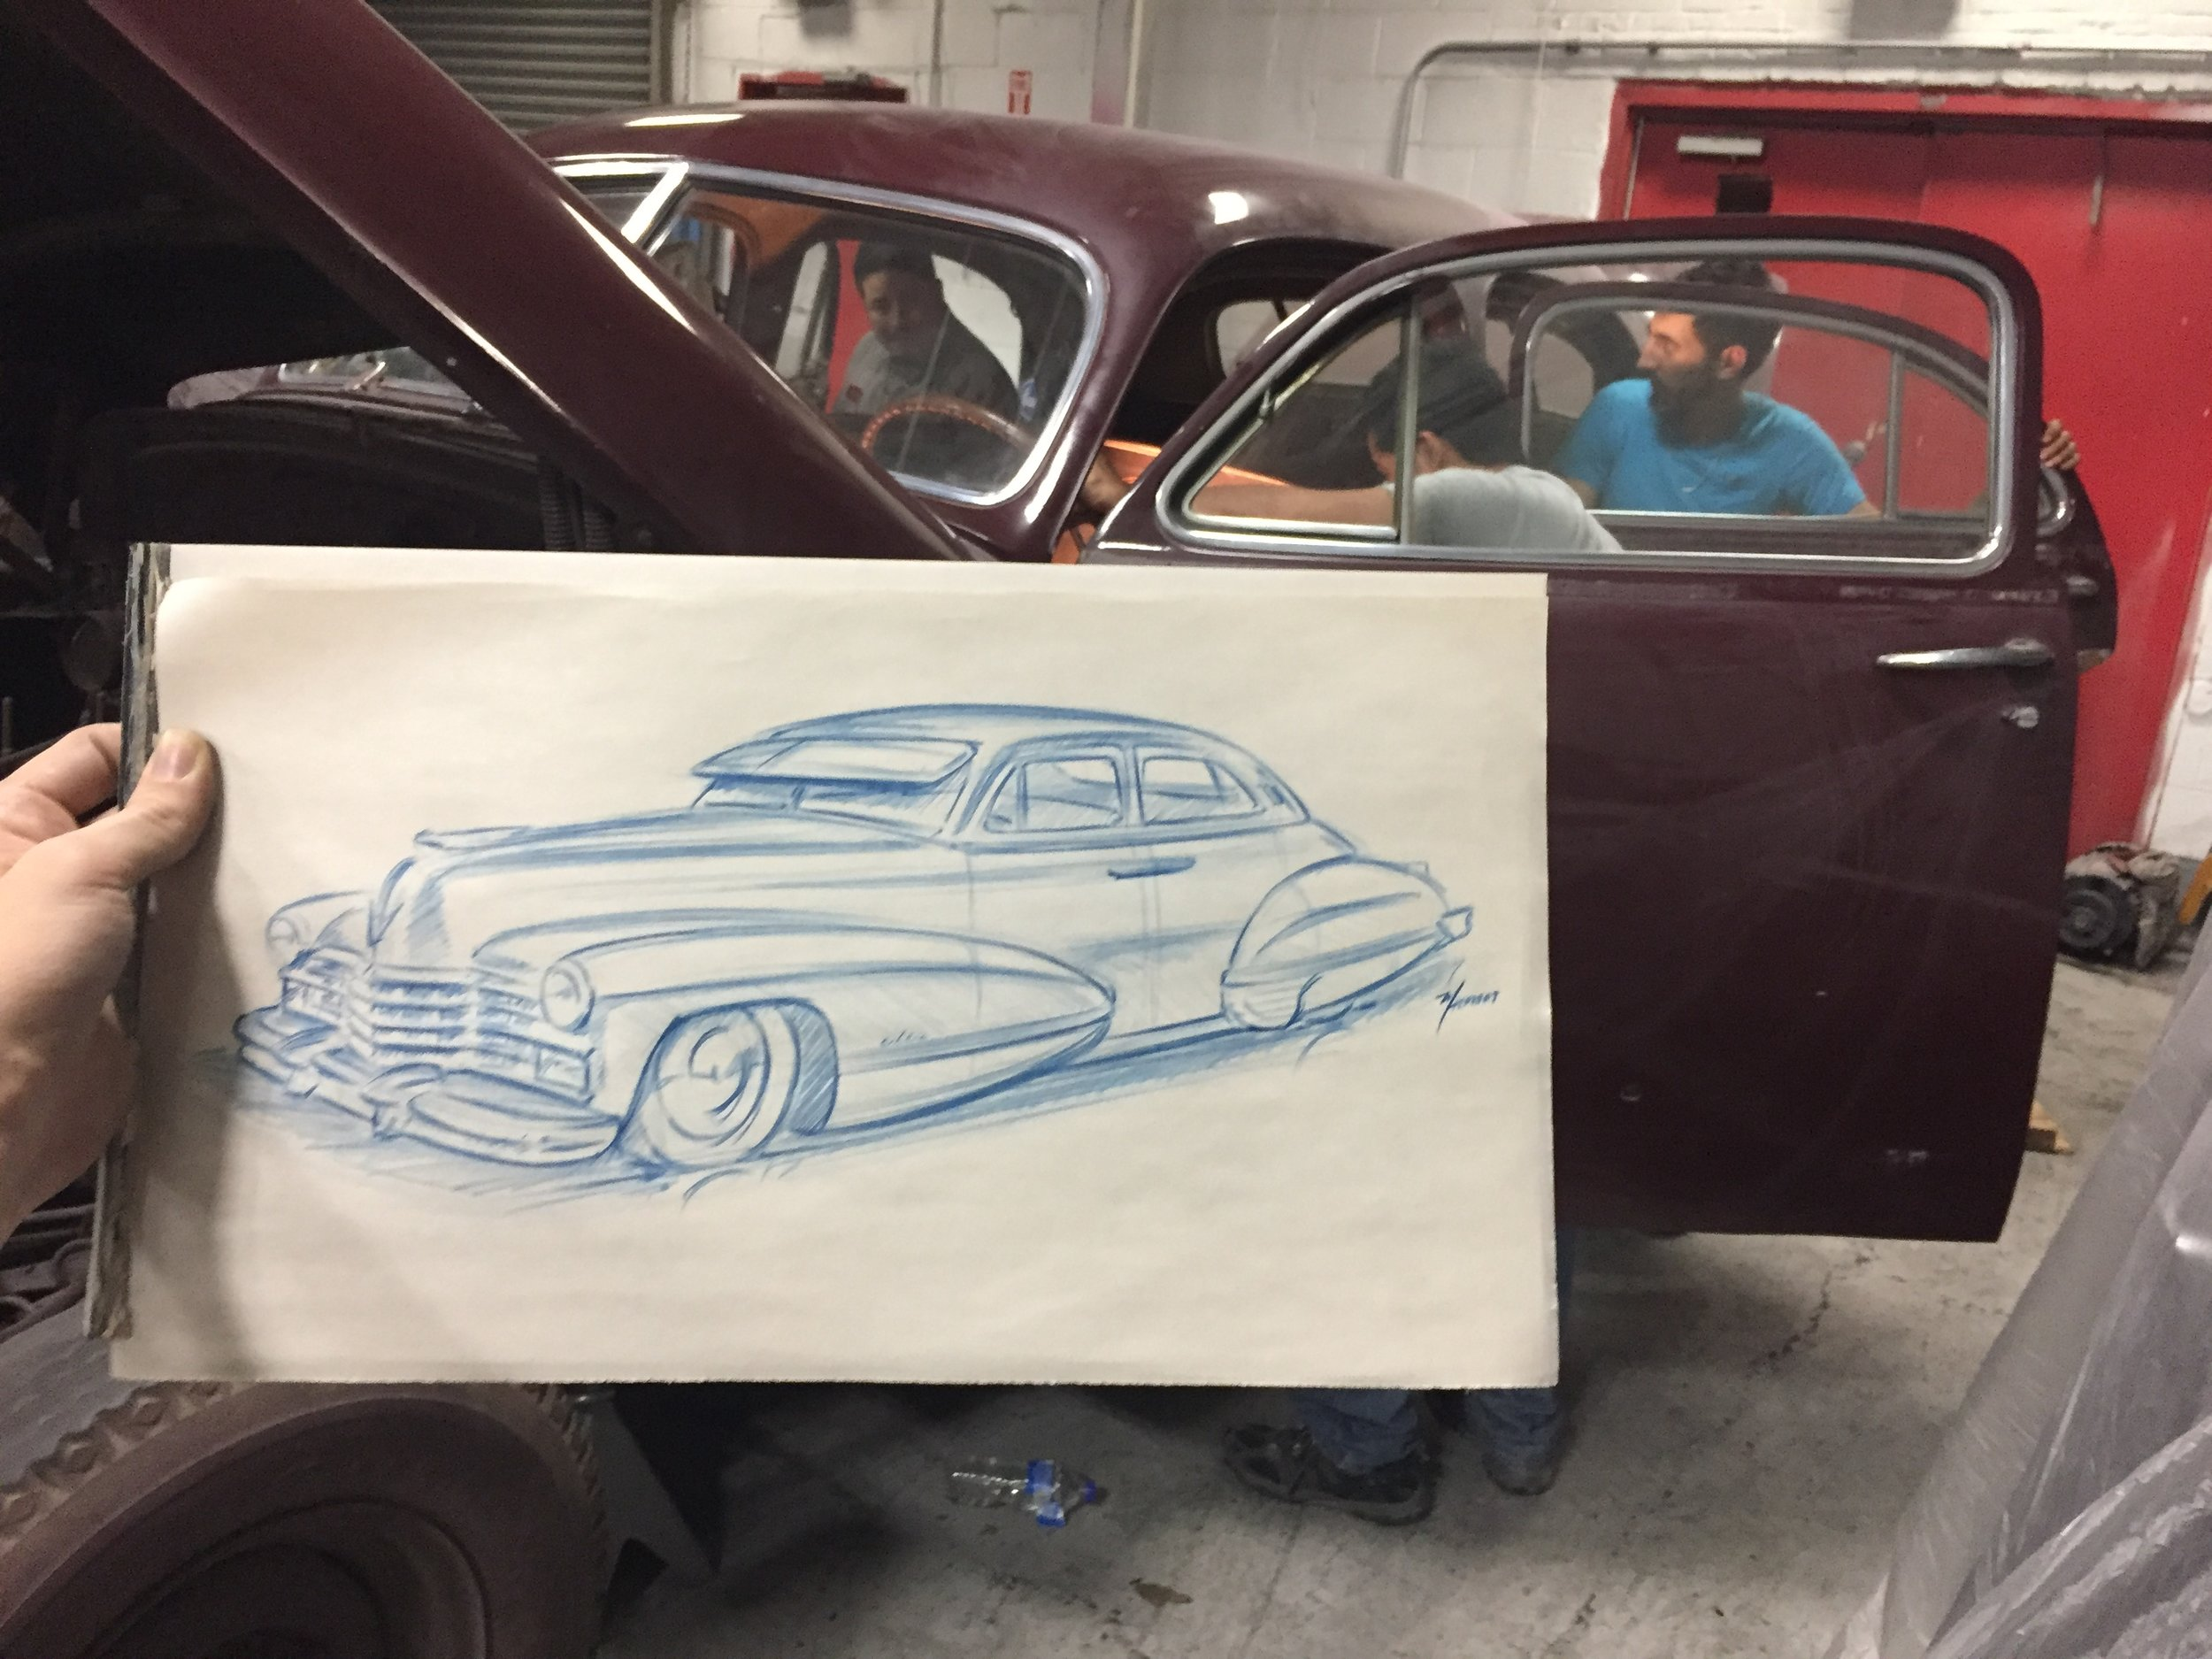 The first sketch of the '47 Cadillac done by Mike Herbert as the interior was taken apart.